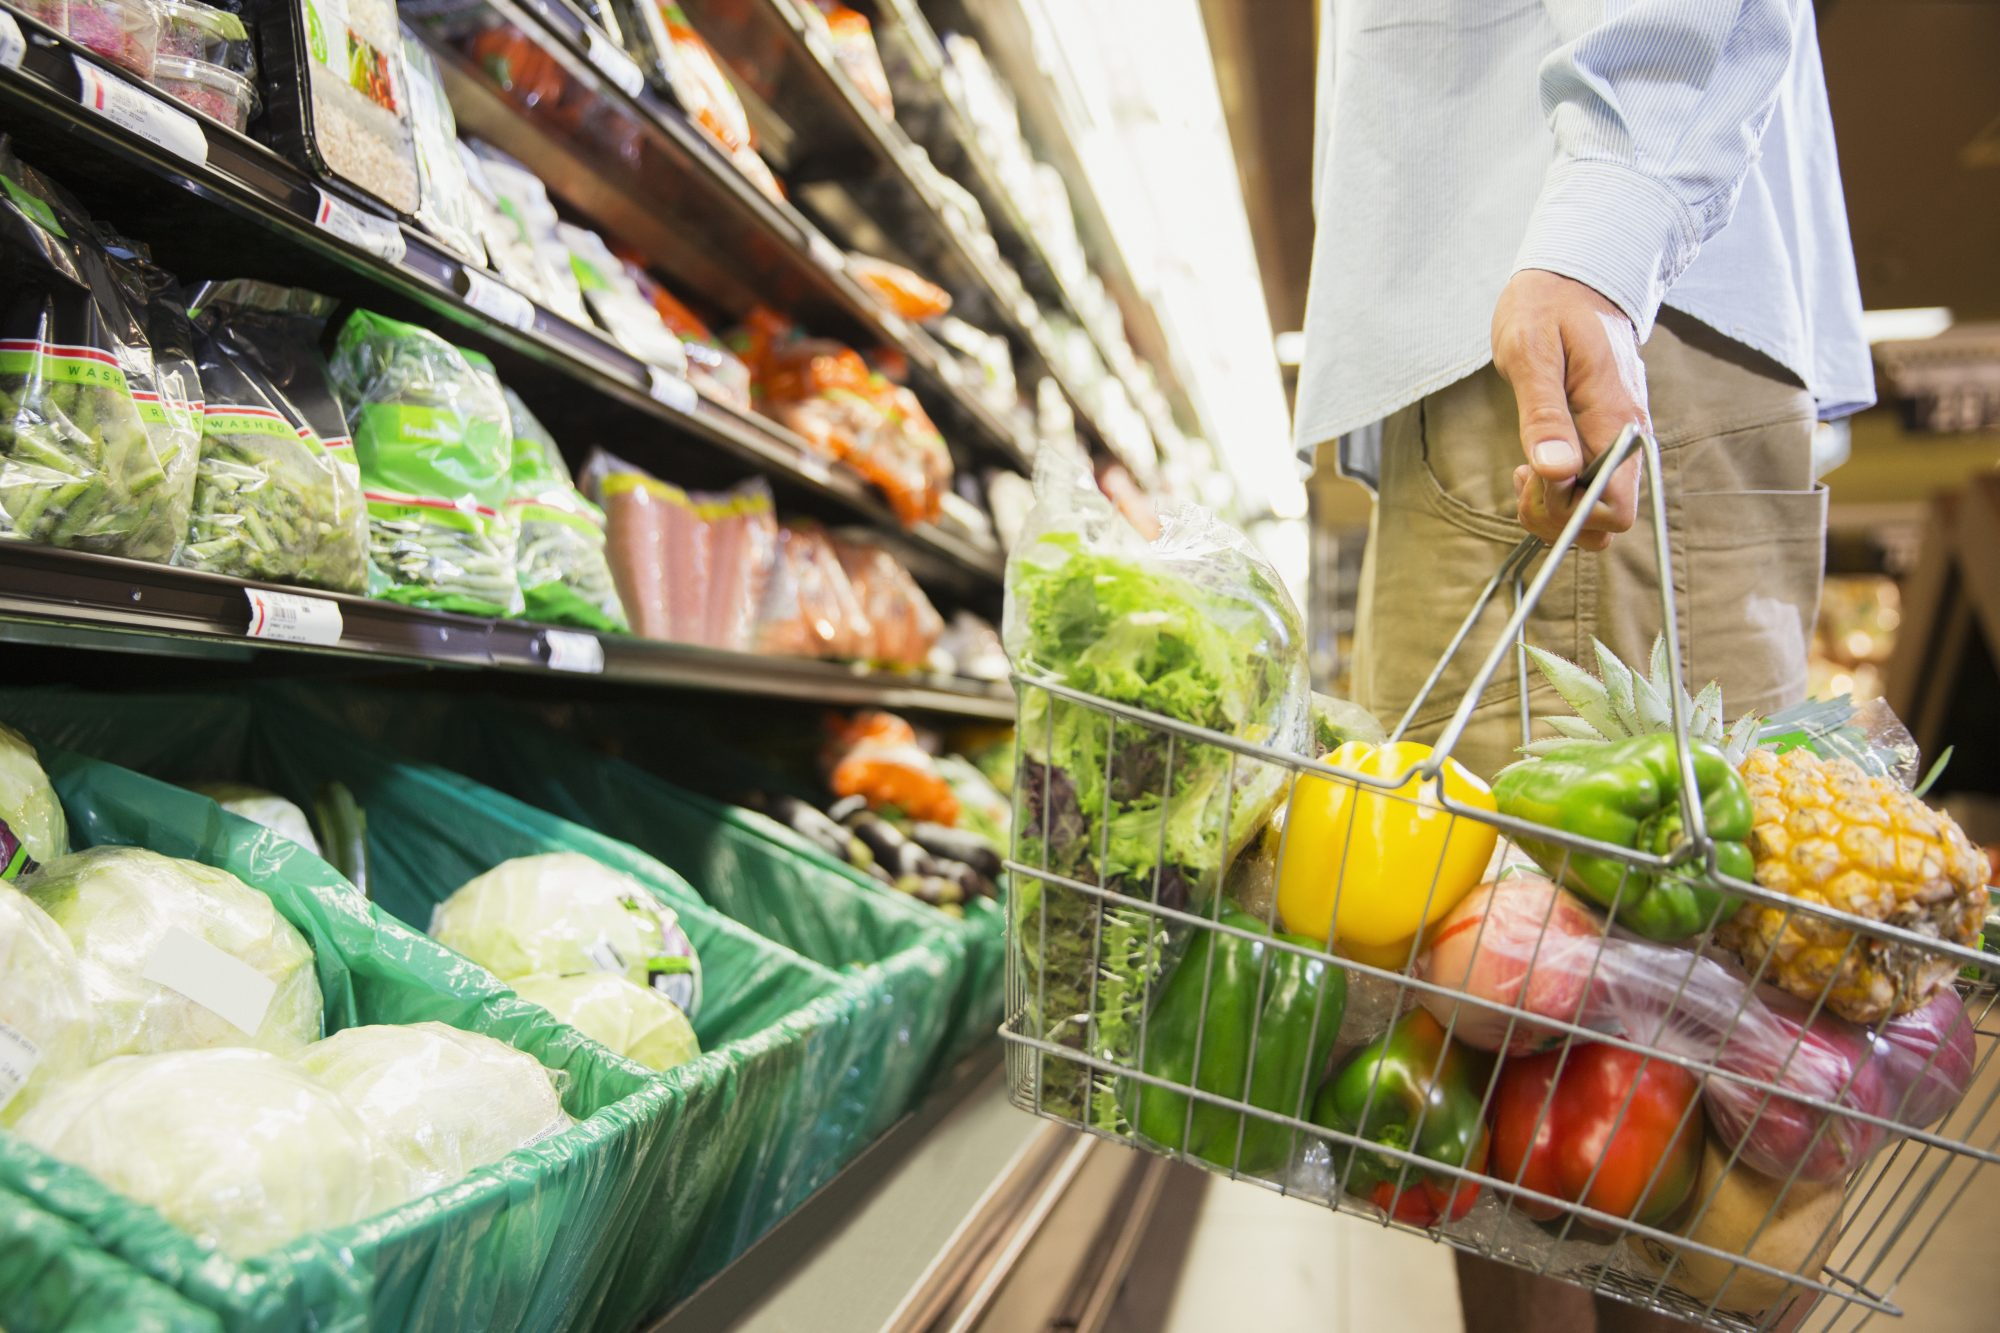 Man Holding Grocery Basket in Produce Section